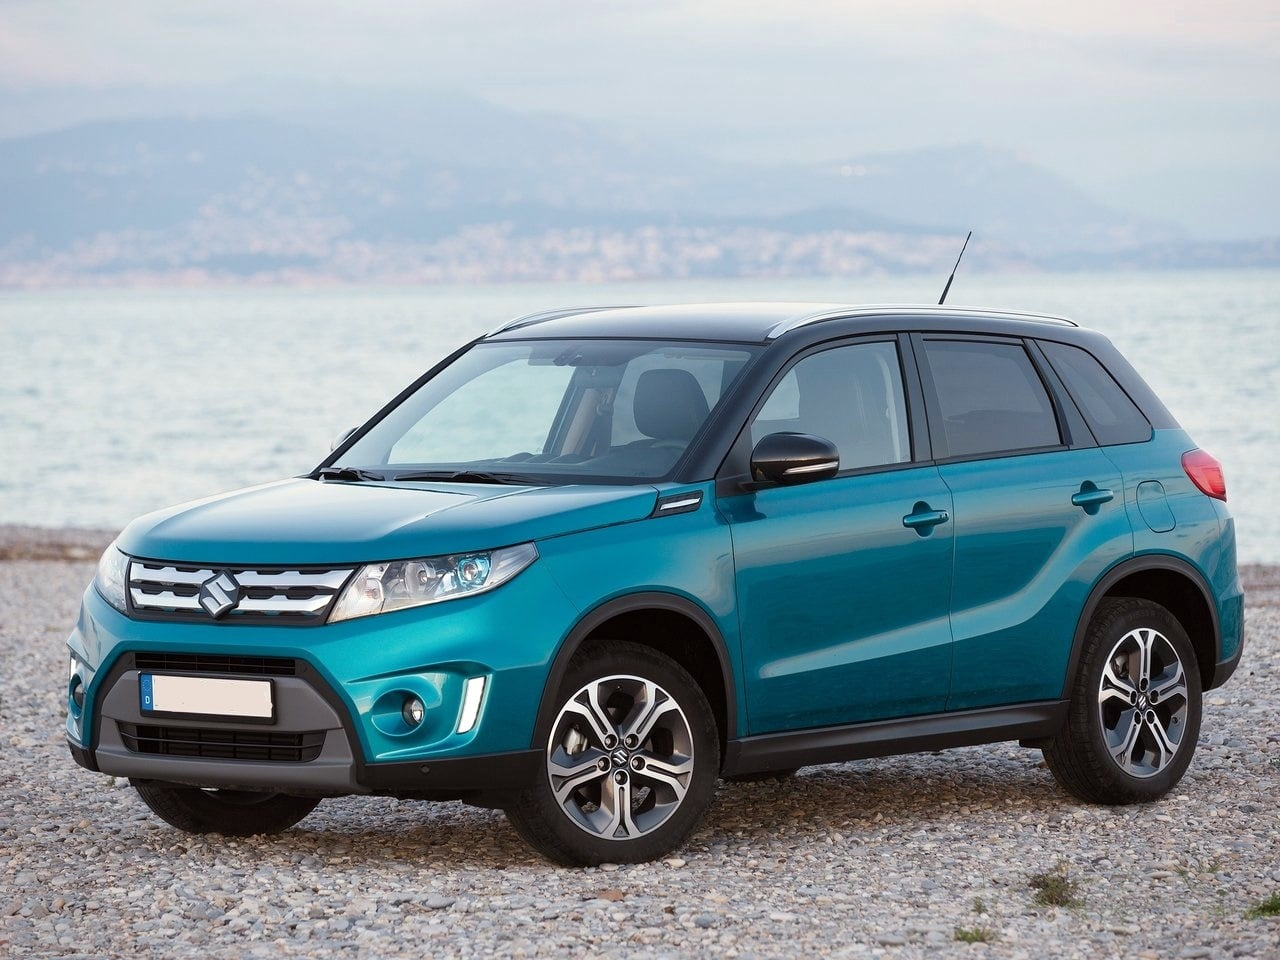 New Maruti Grand Vitara India Launch in Offing, Expect ...